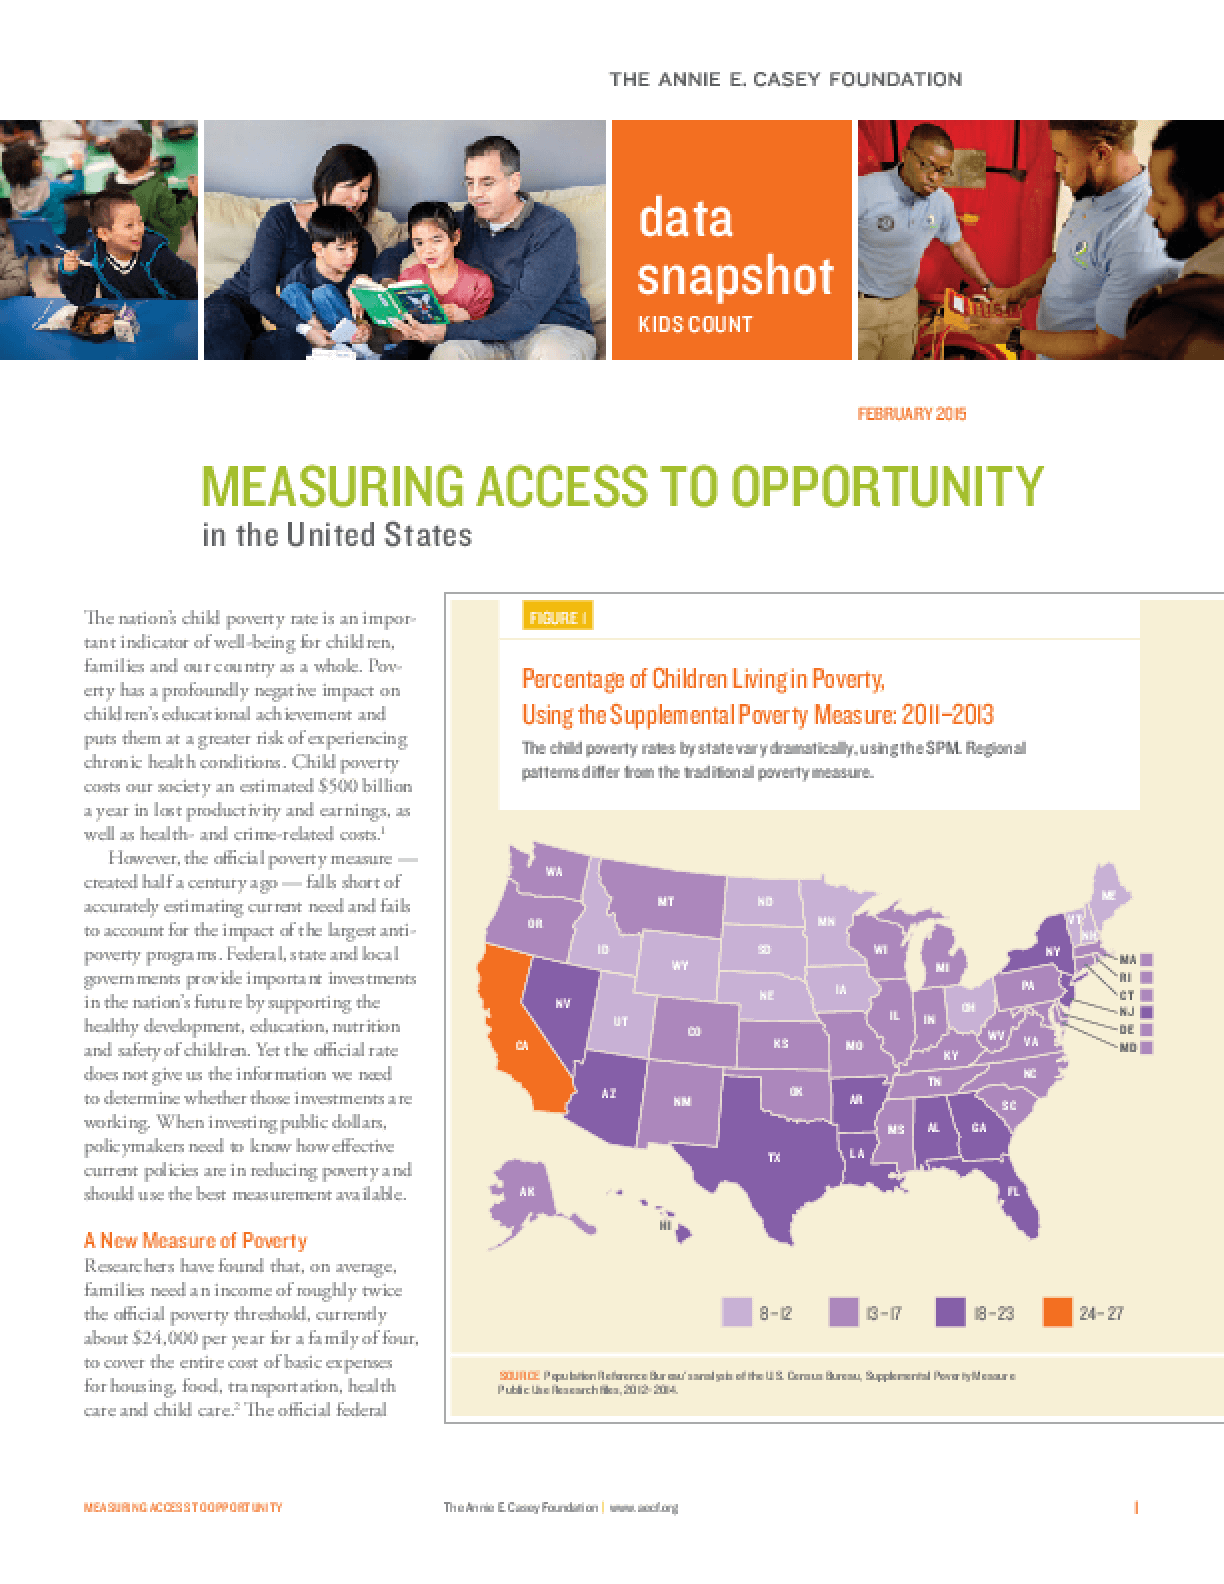 Measuring Access to Opportunity in the United States